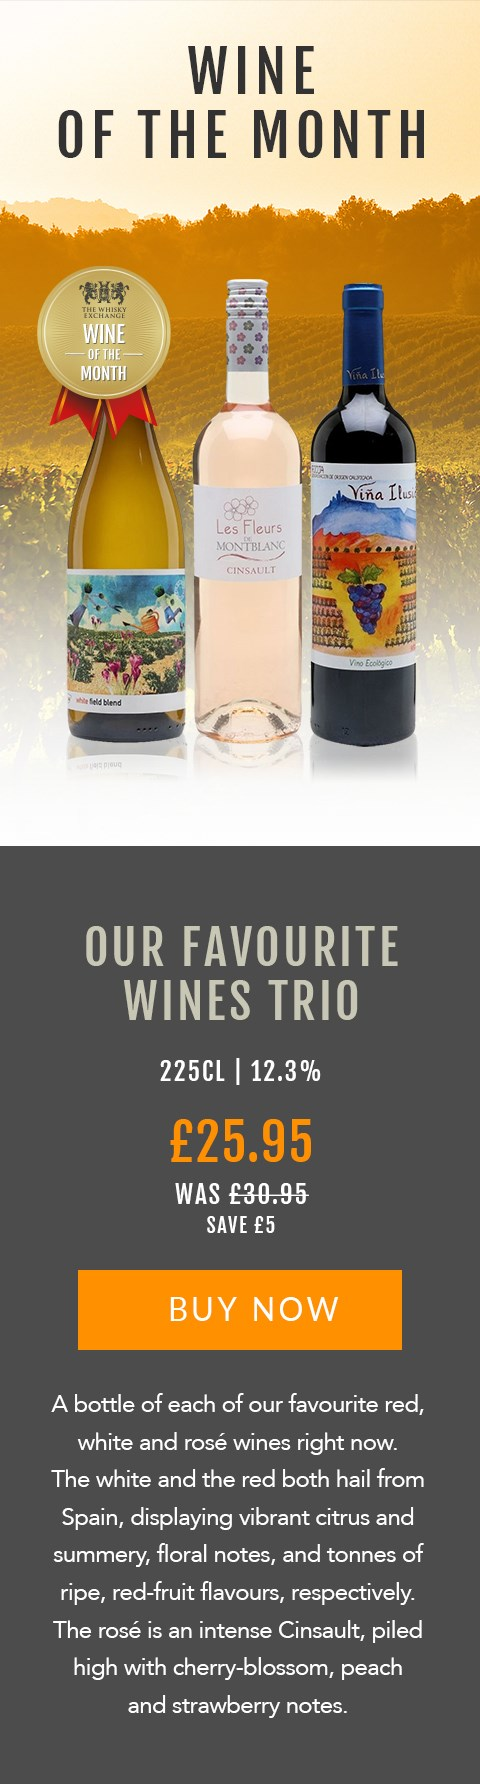 WINE OF THE MONTH  Our Favourite Wines Trio  225cl | 12.3%  £25.95 (was £30.95)  Save £5  BUY NOW> https://www.thewhiskyexchange.com/feature/wineofthemonth  A bottle of each of our favourite red, white and rosé wines right now. The white and the red both hail from Spain, displaying vibrant citrus and summery, floral notes, and tonnes of ripe, red-fruit flavours, respectively. The rosé is an intense Cinsault, piled high with cherry-blossom, peach and strawberry notes.